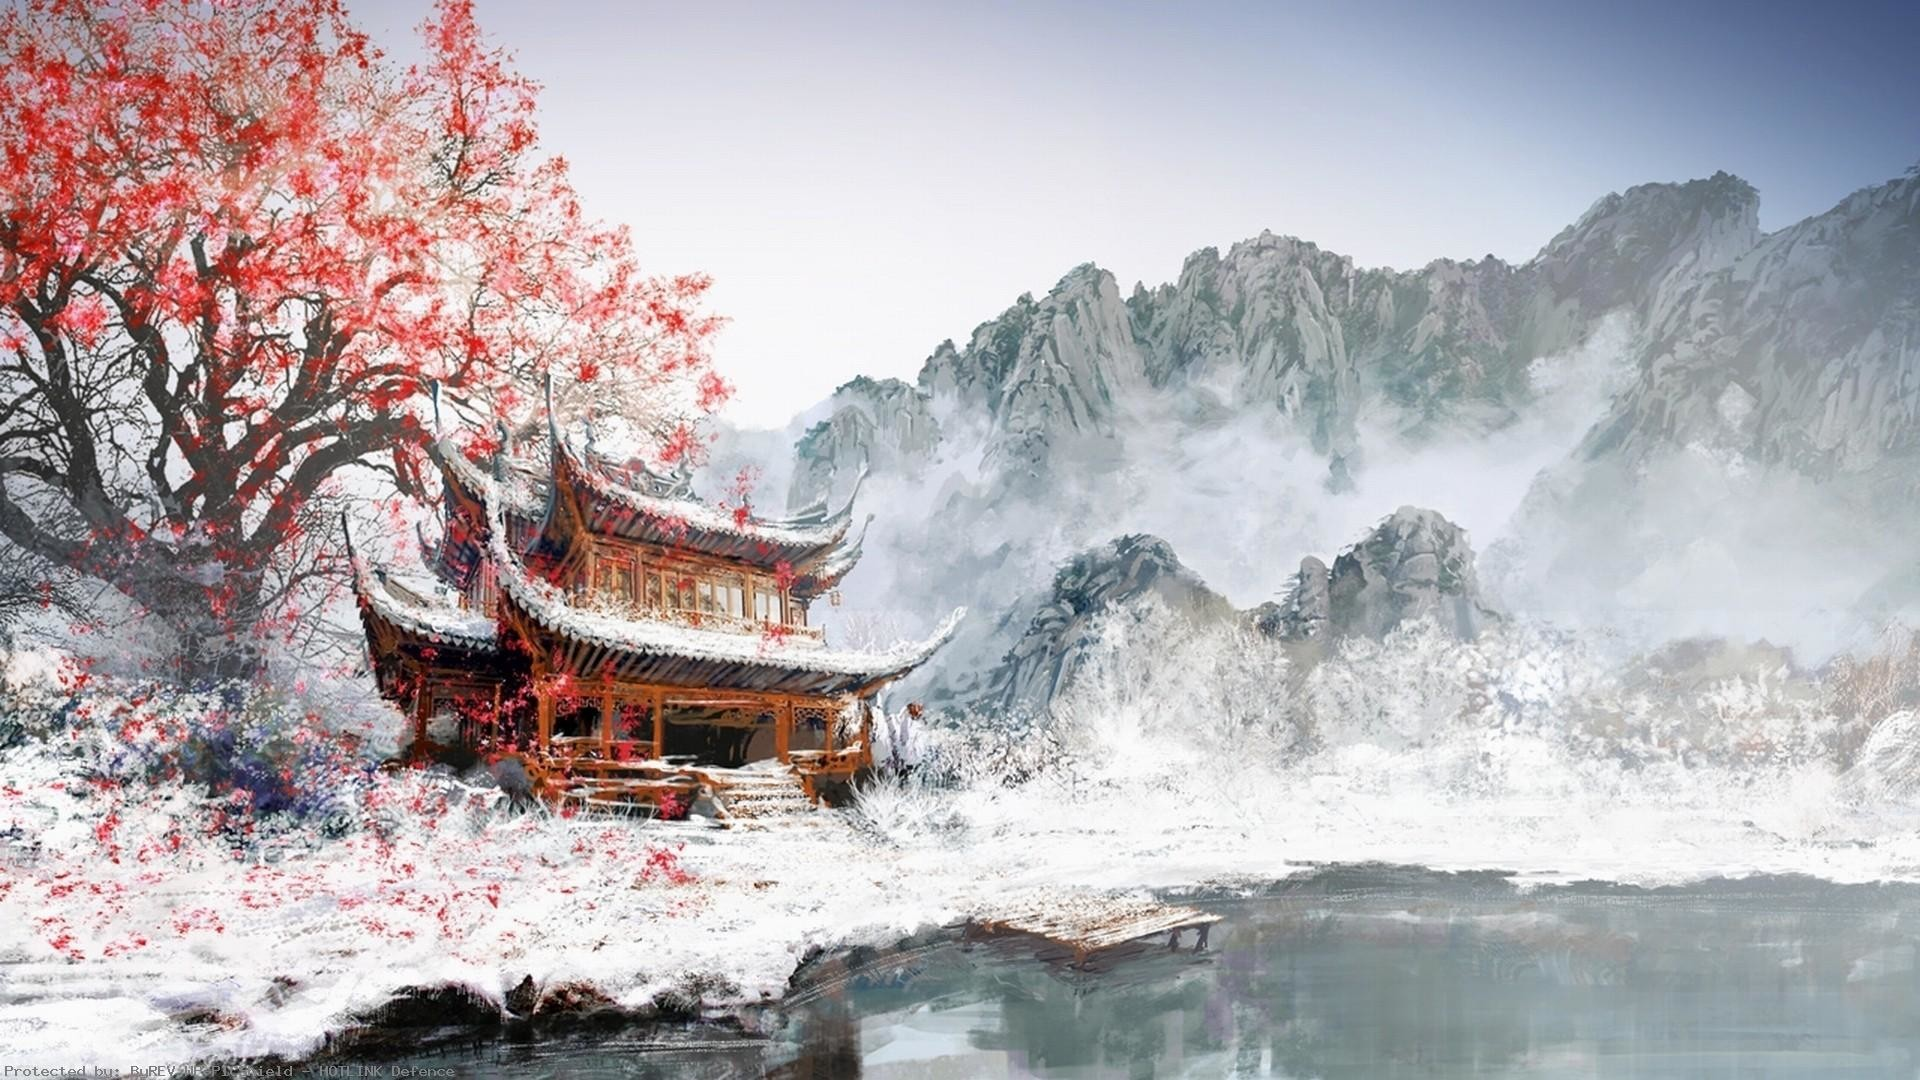 General-1920×1080-painting-Japan-winter-white-snow-mountains-